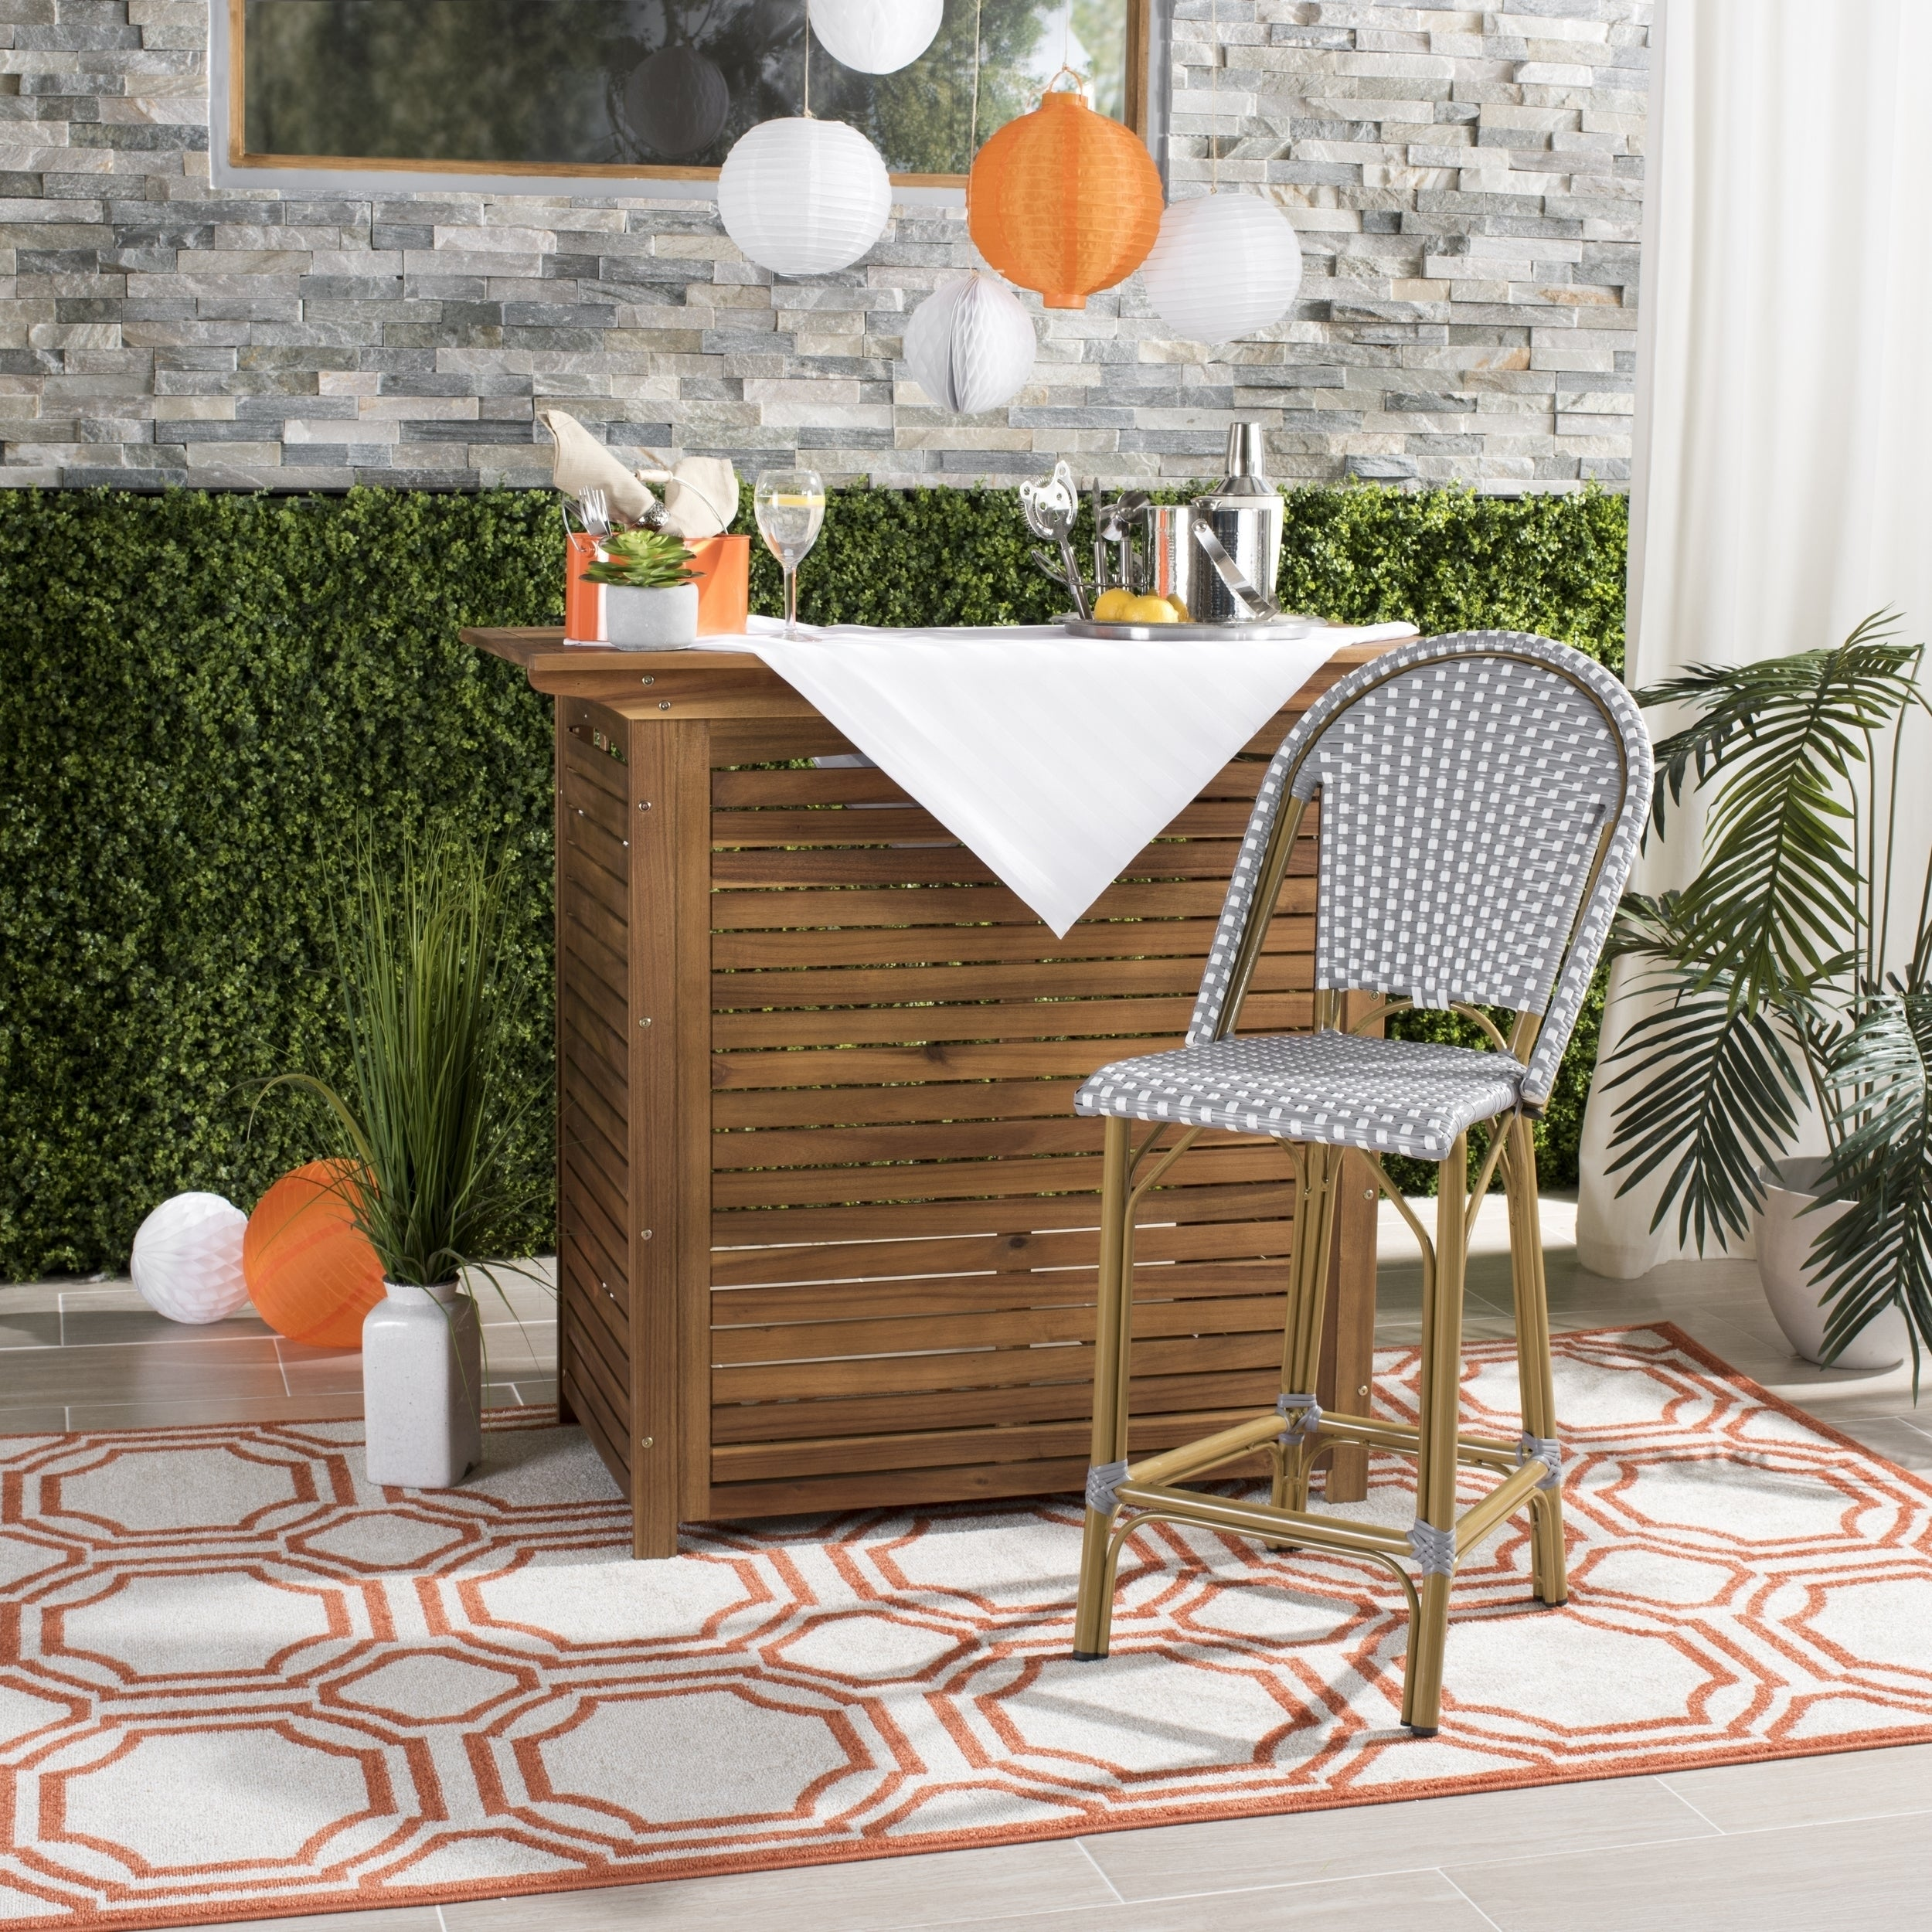 Buy Outdoor Sofas, Chairs & Sectionals Online at Overstock.com   Our ...